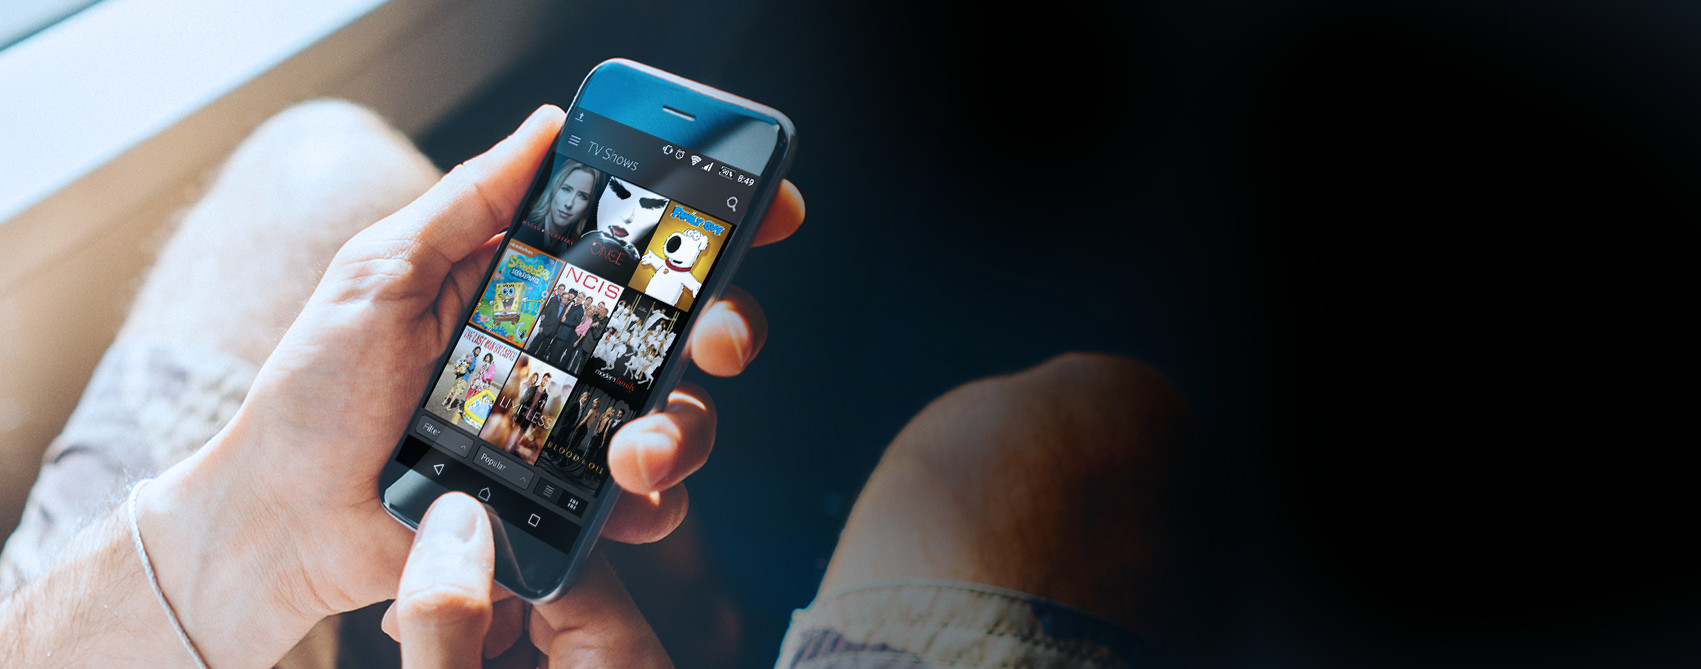 Shaw launches app for television subscribers to watch live